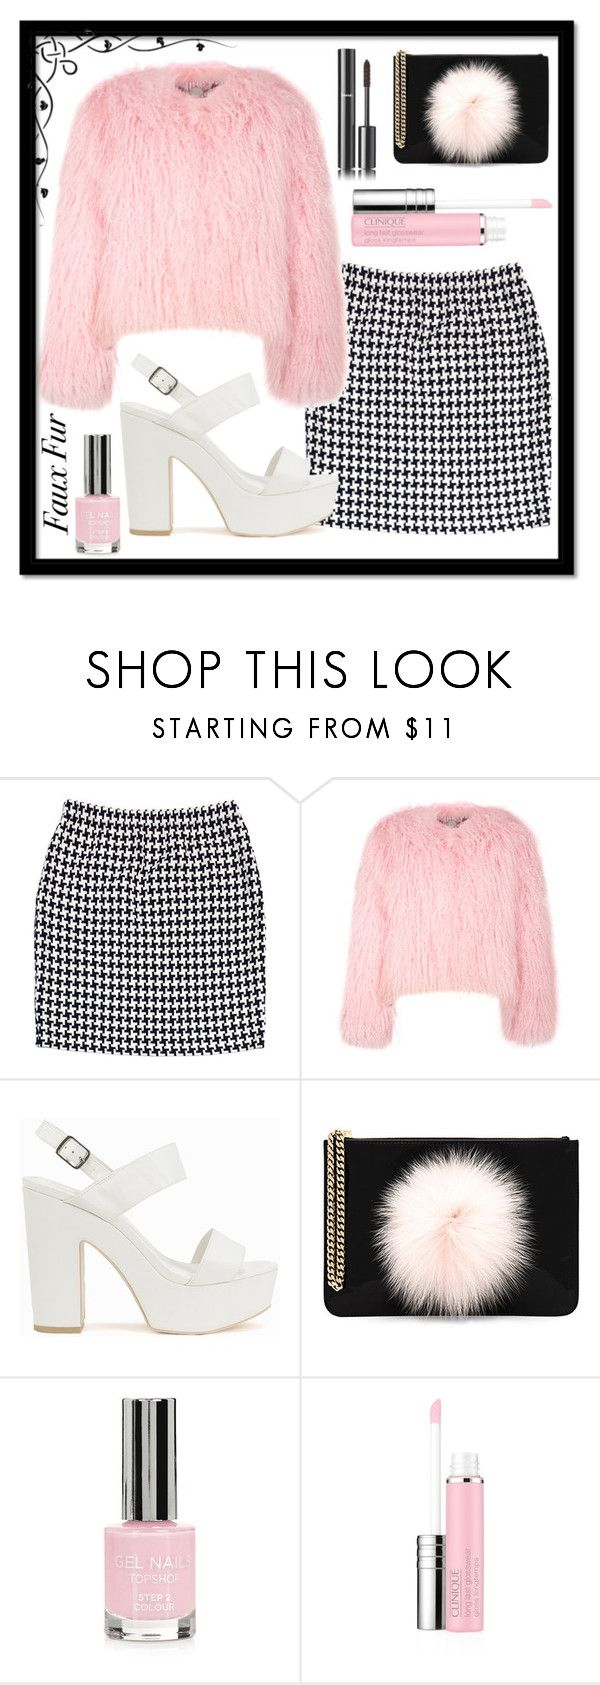 """""""The Fur is Fake"""" by i-love-tennis ❤ liked on Polyvore featuring St. John, Charlotte Simone, Nly Shoes, Les Petits Joueurs, Topshop, Clinique, Chanel and fauxfur"""